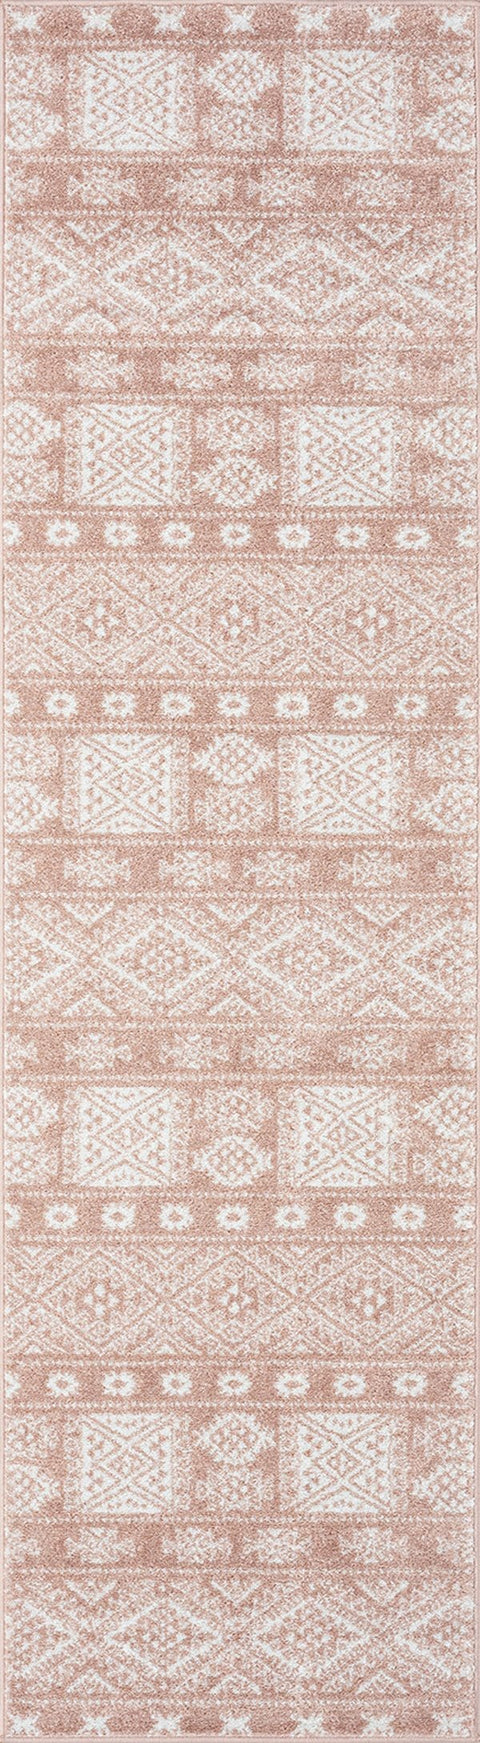 Rita Peach and Ivory Tribal Pattern Runner Rug